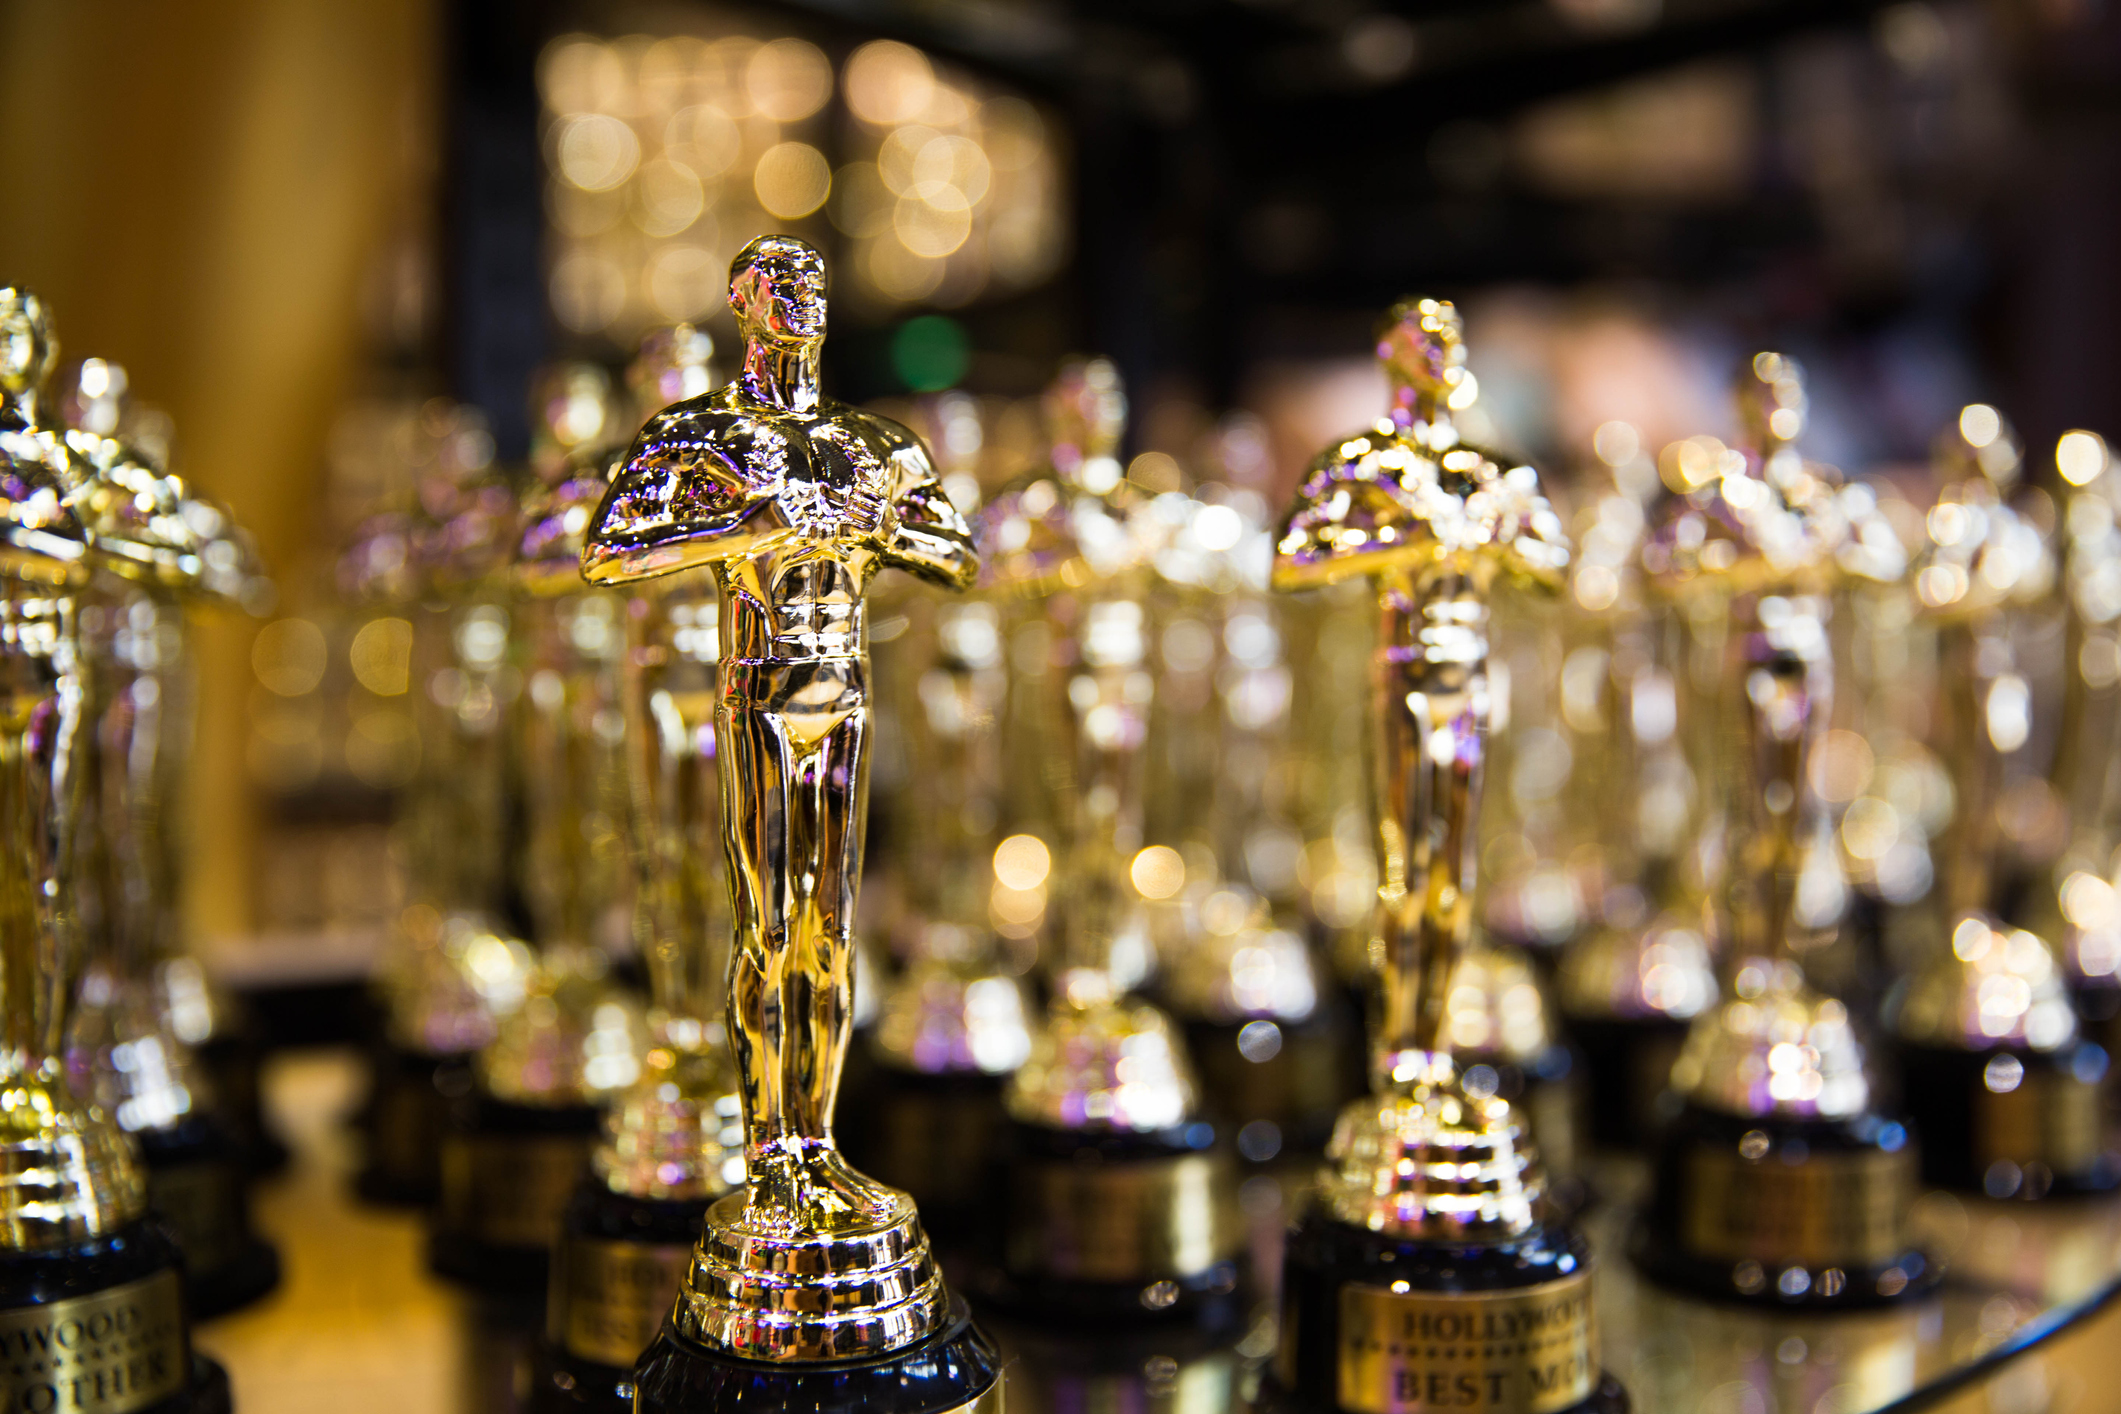 The Academy, which hosts the Oscars, has invited members from 59 countries and half of them are women.